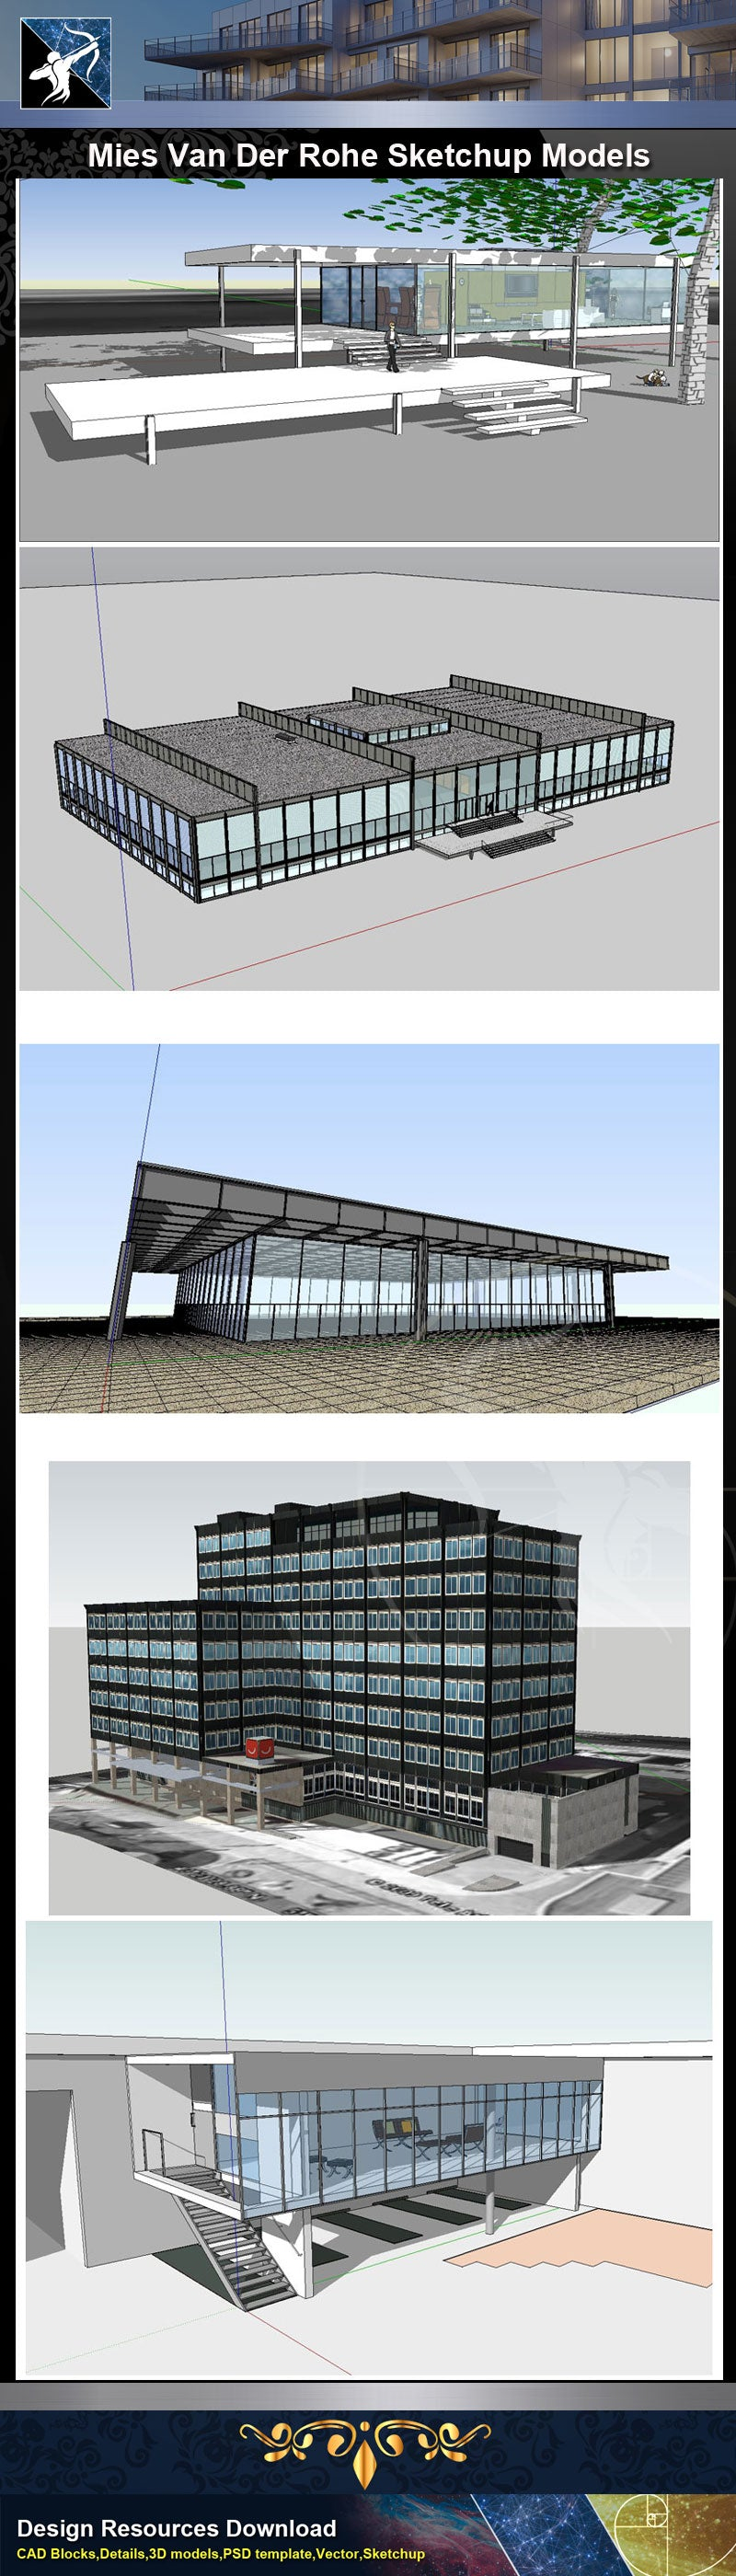 ★Famous Architecture -17 Kinds of Mies Van Der Rohe Sketchup 3D Models